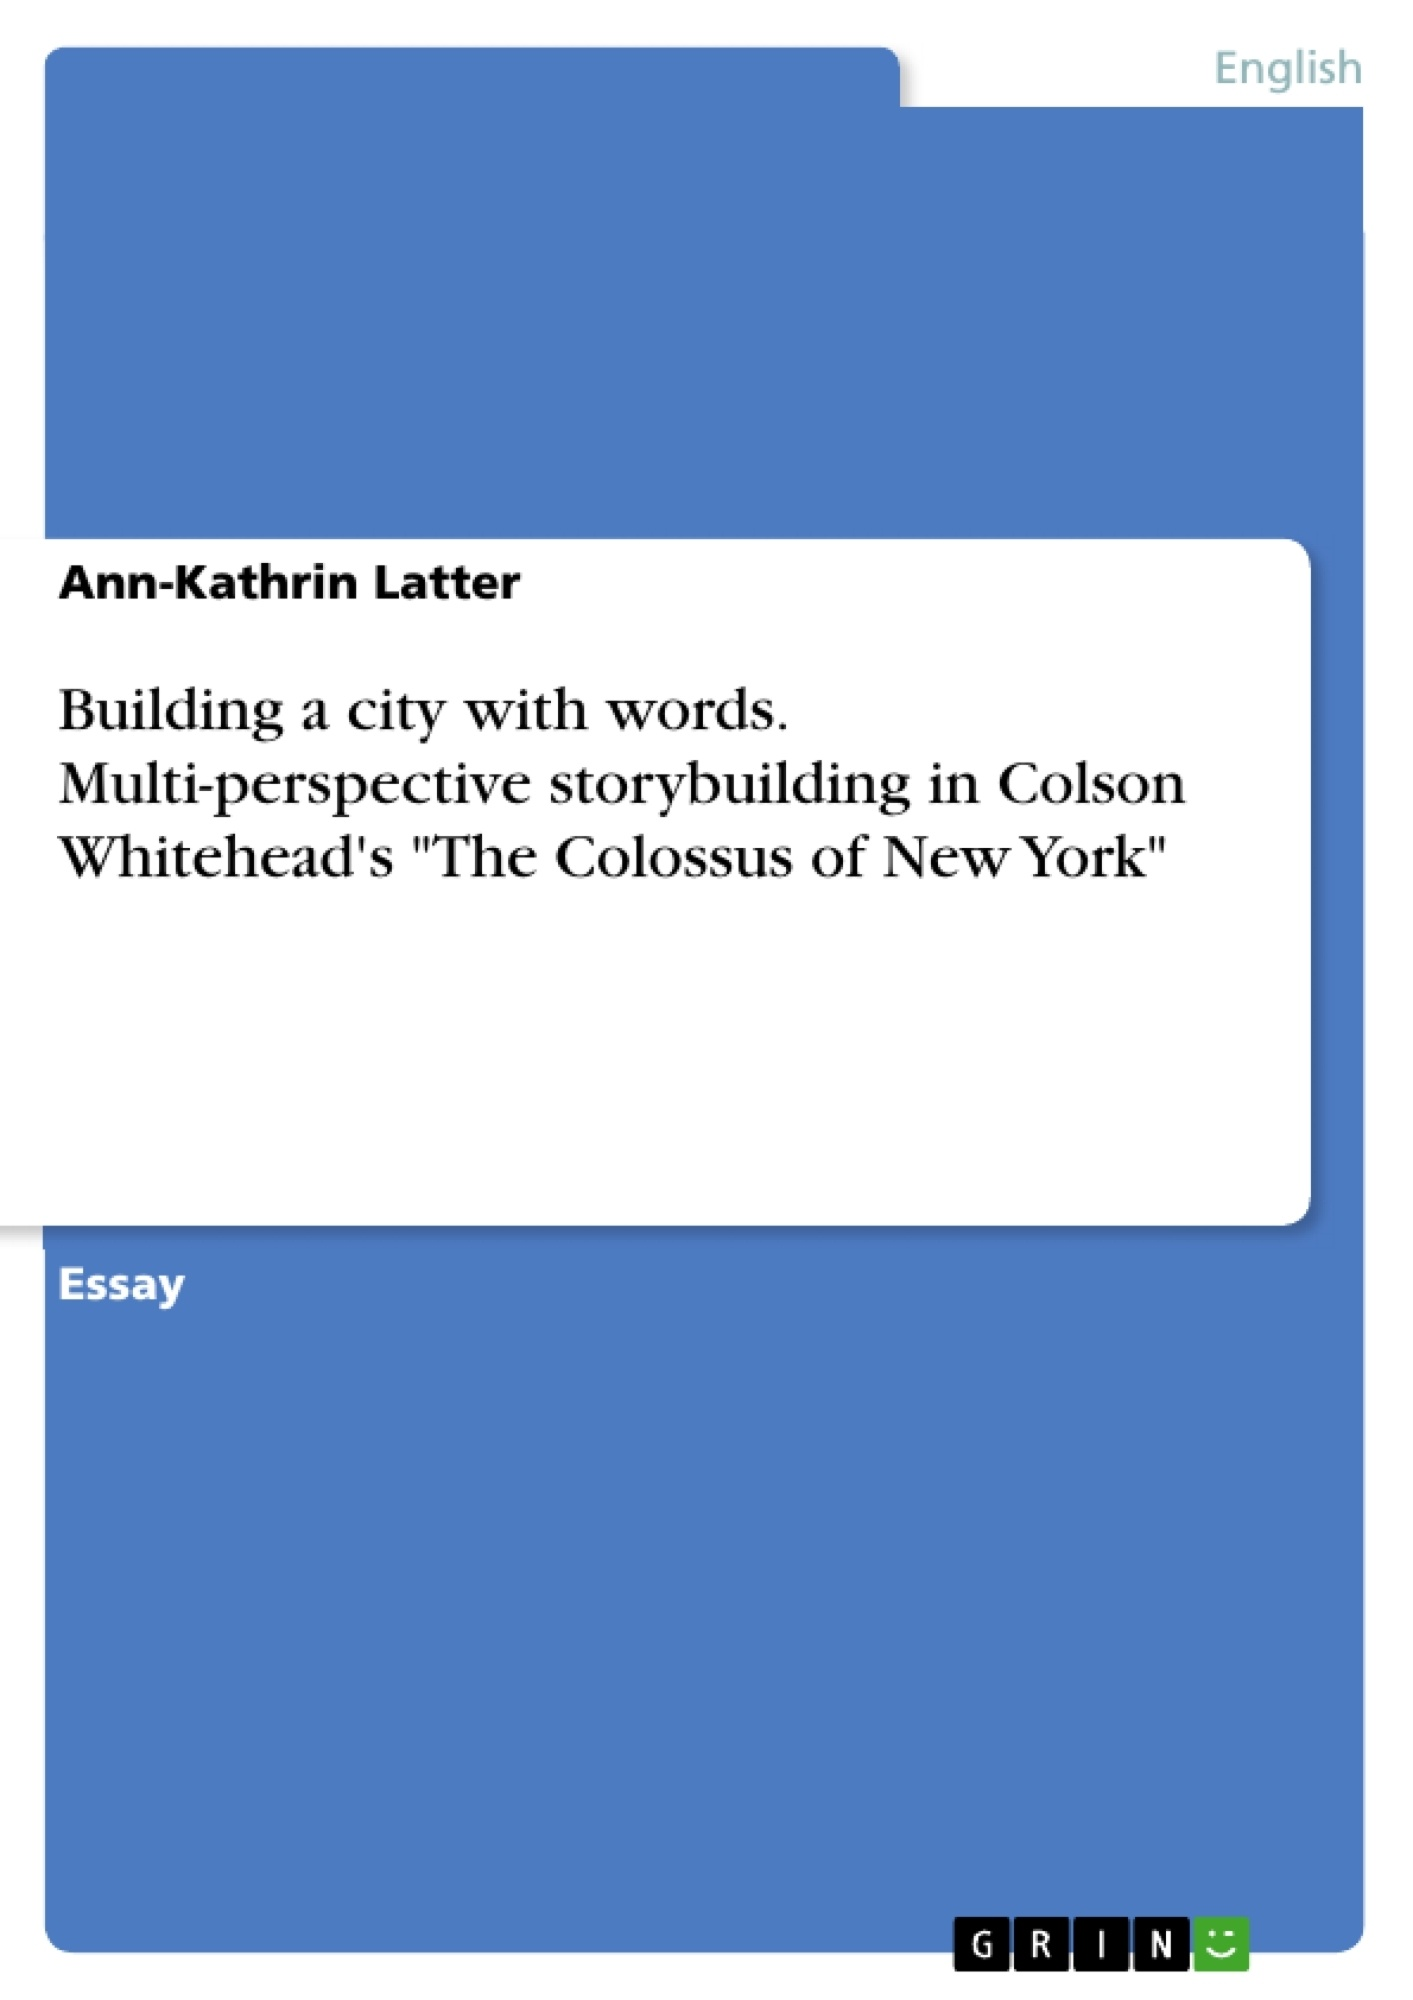 """Title: Building a city with words. Multi-perspective storybuilding in Colson Whitehead's """"The Colossus of New York"""""""